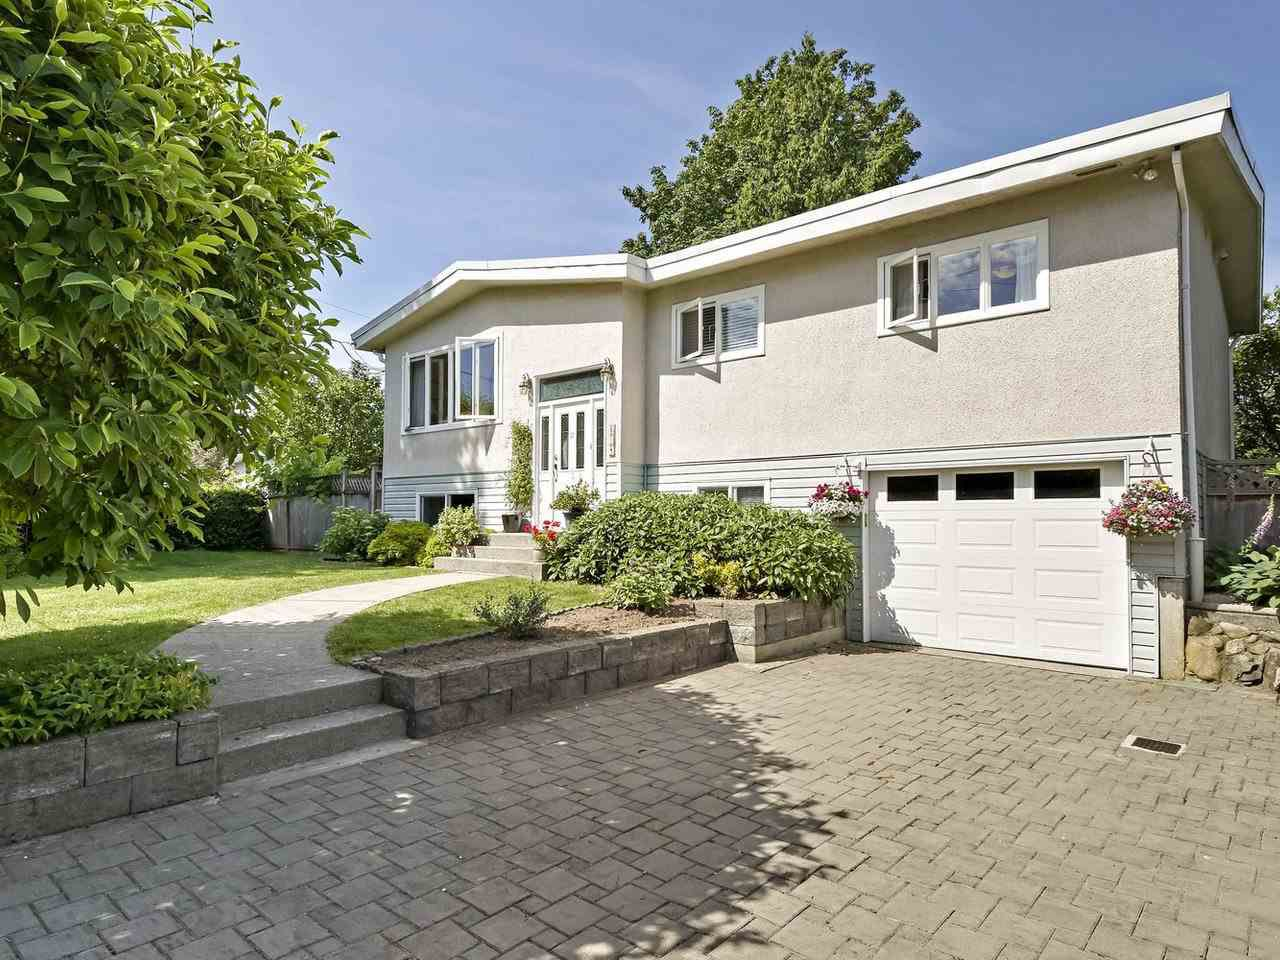 Main Photo: 814 LEVIS Street in Coquitlam: Harbour Place House for sale : MLS®# R2381563